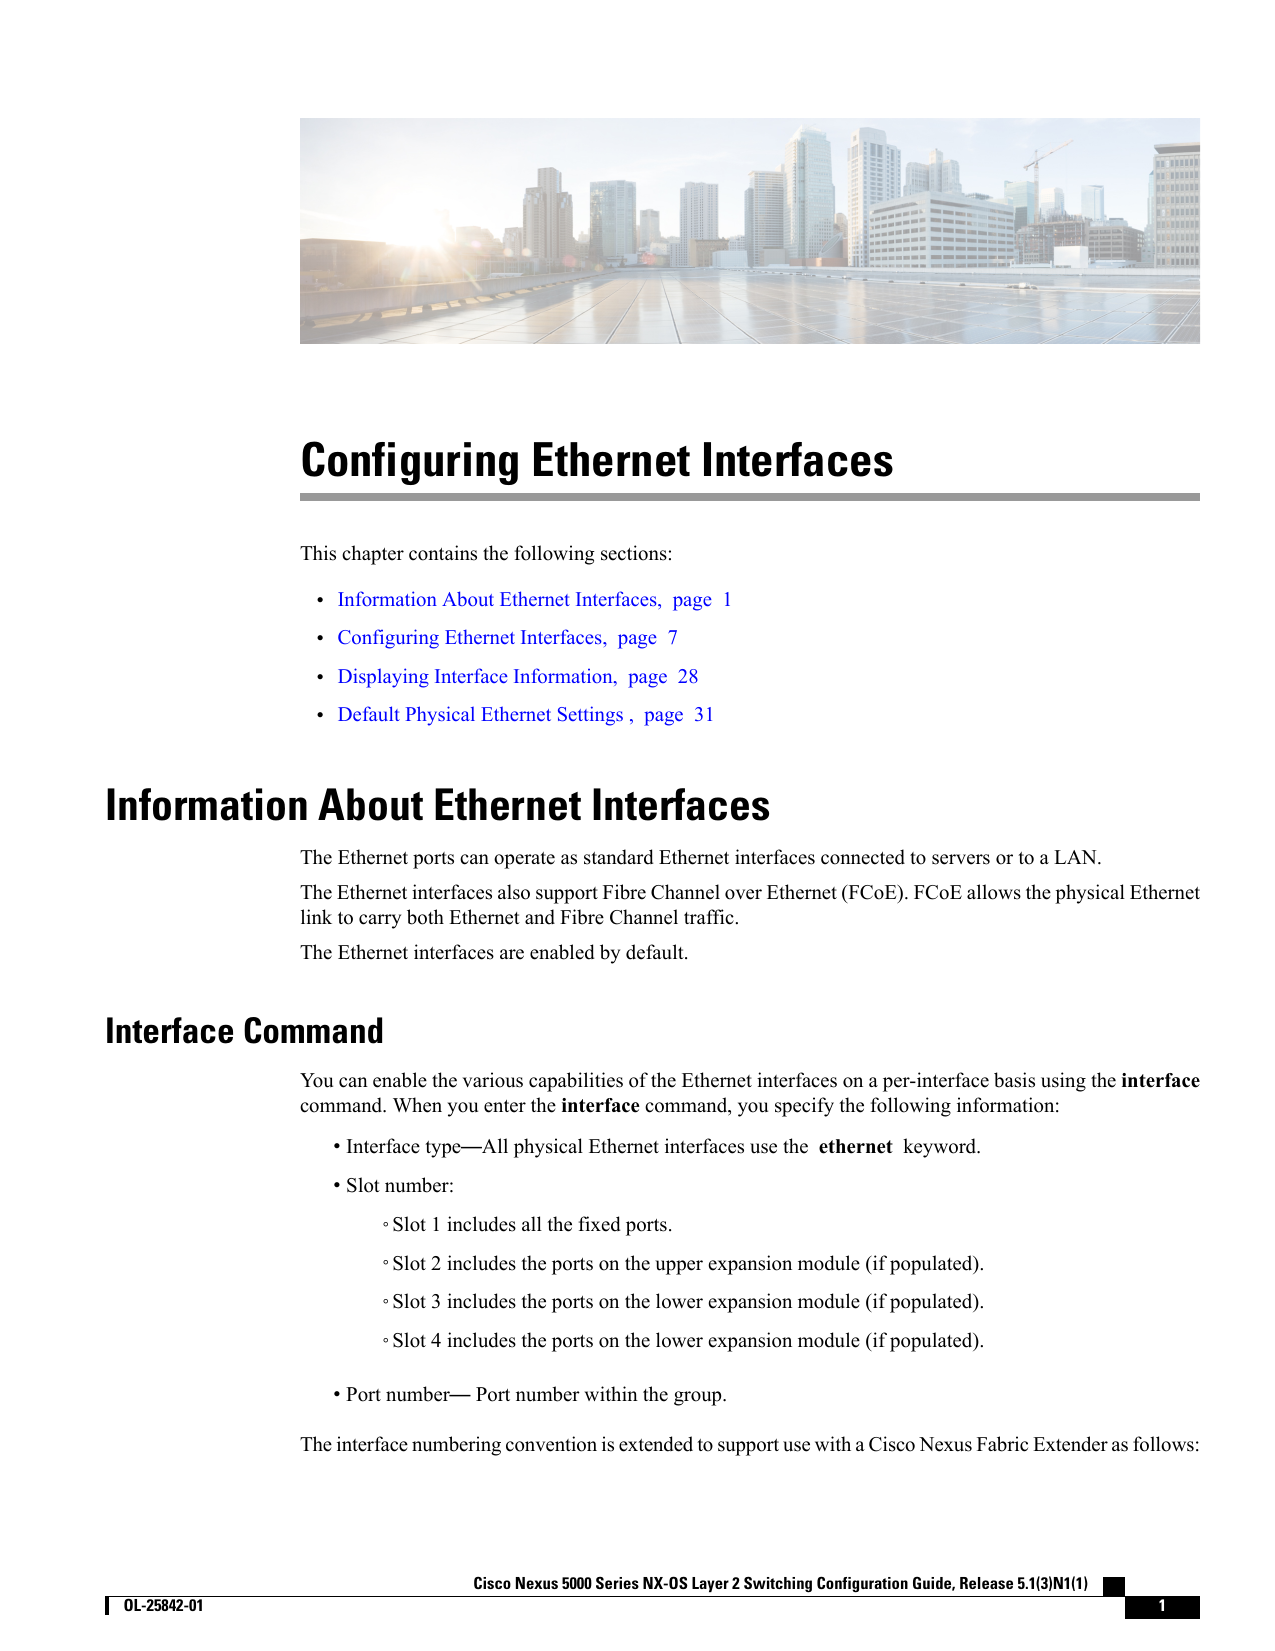 Configuring Ethernet Interfaces